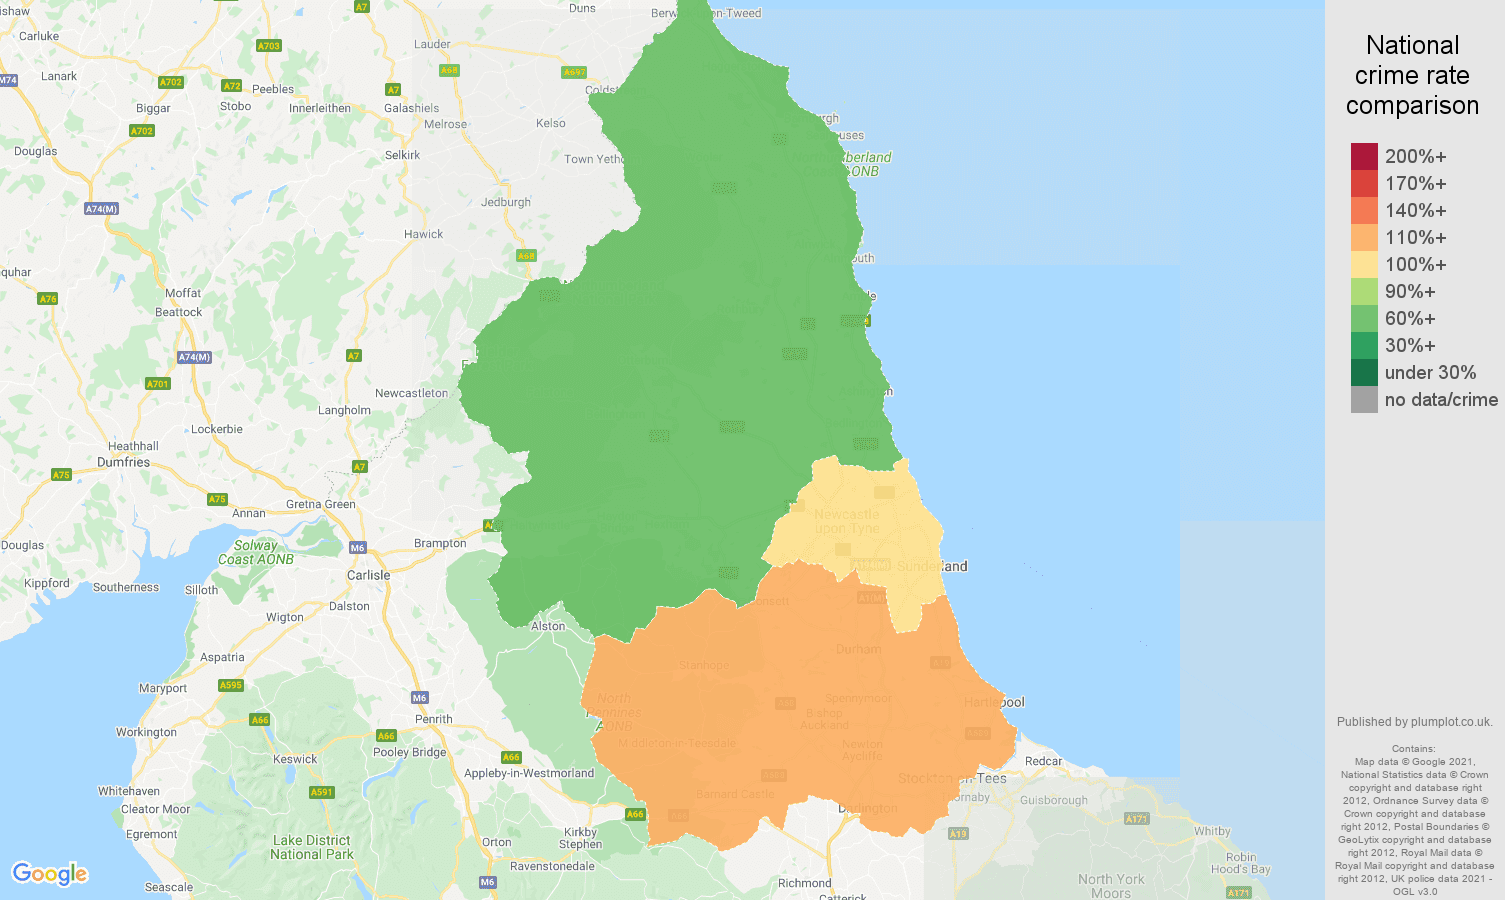 North East burglary crime rate comparison map